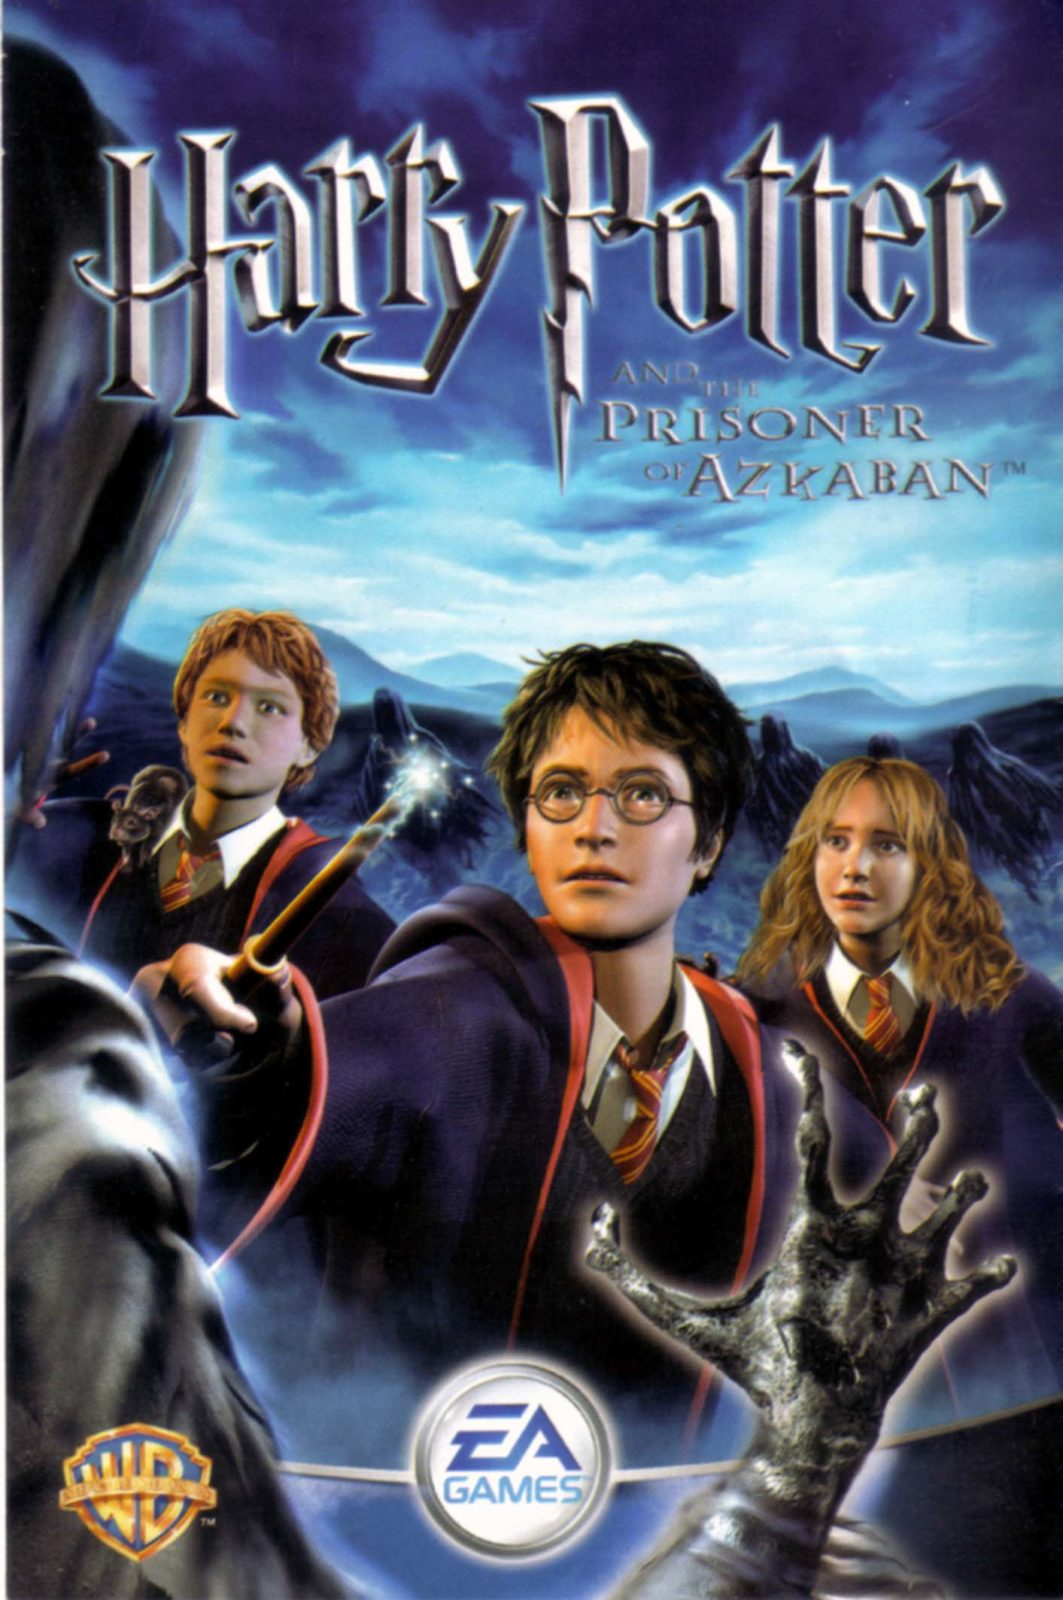 20070304205531!Harry_Potter_and_the_Prisoner_of_Azkaban_—_game